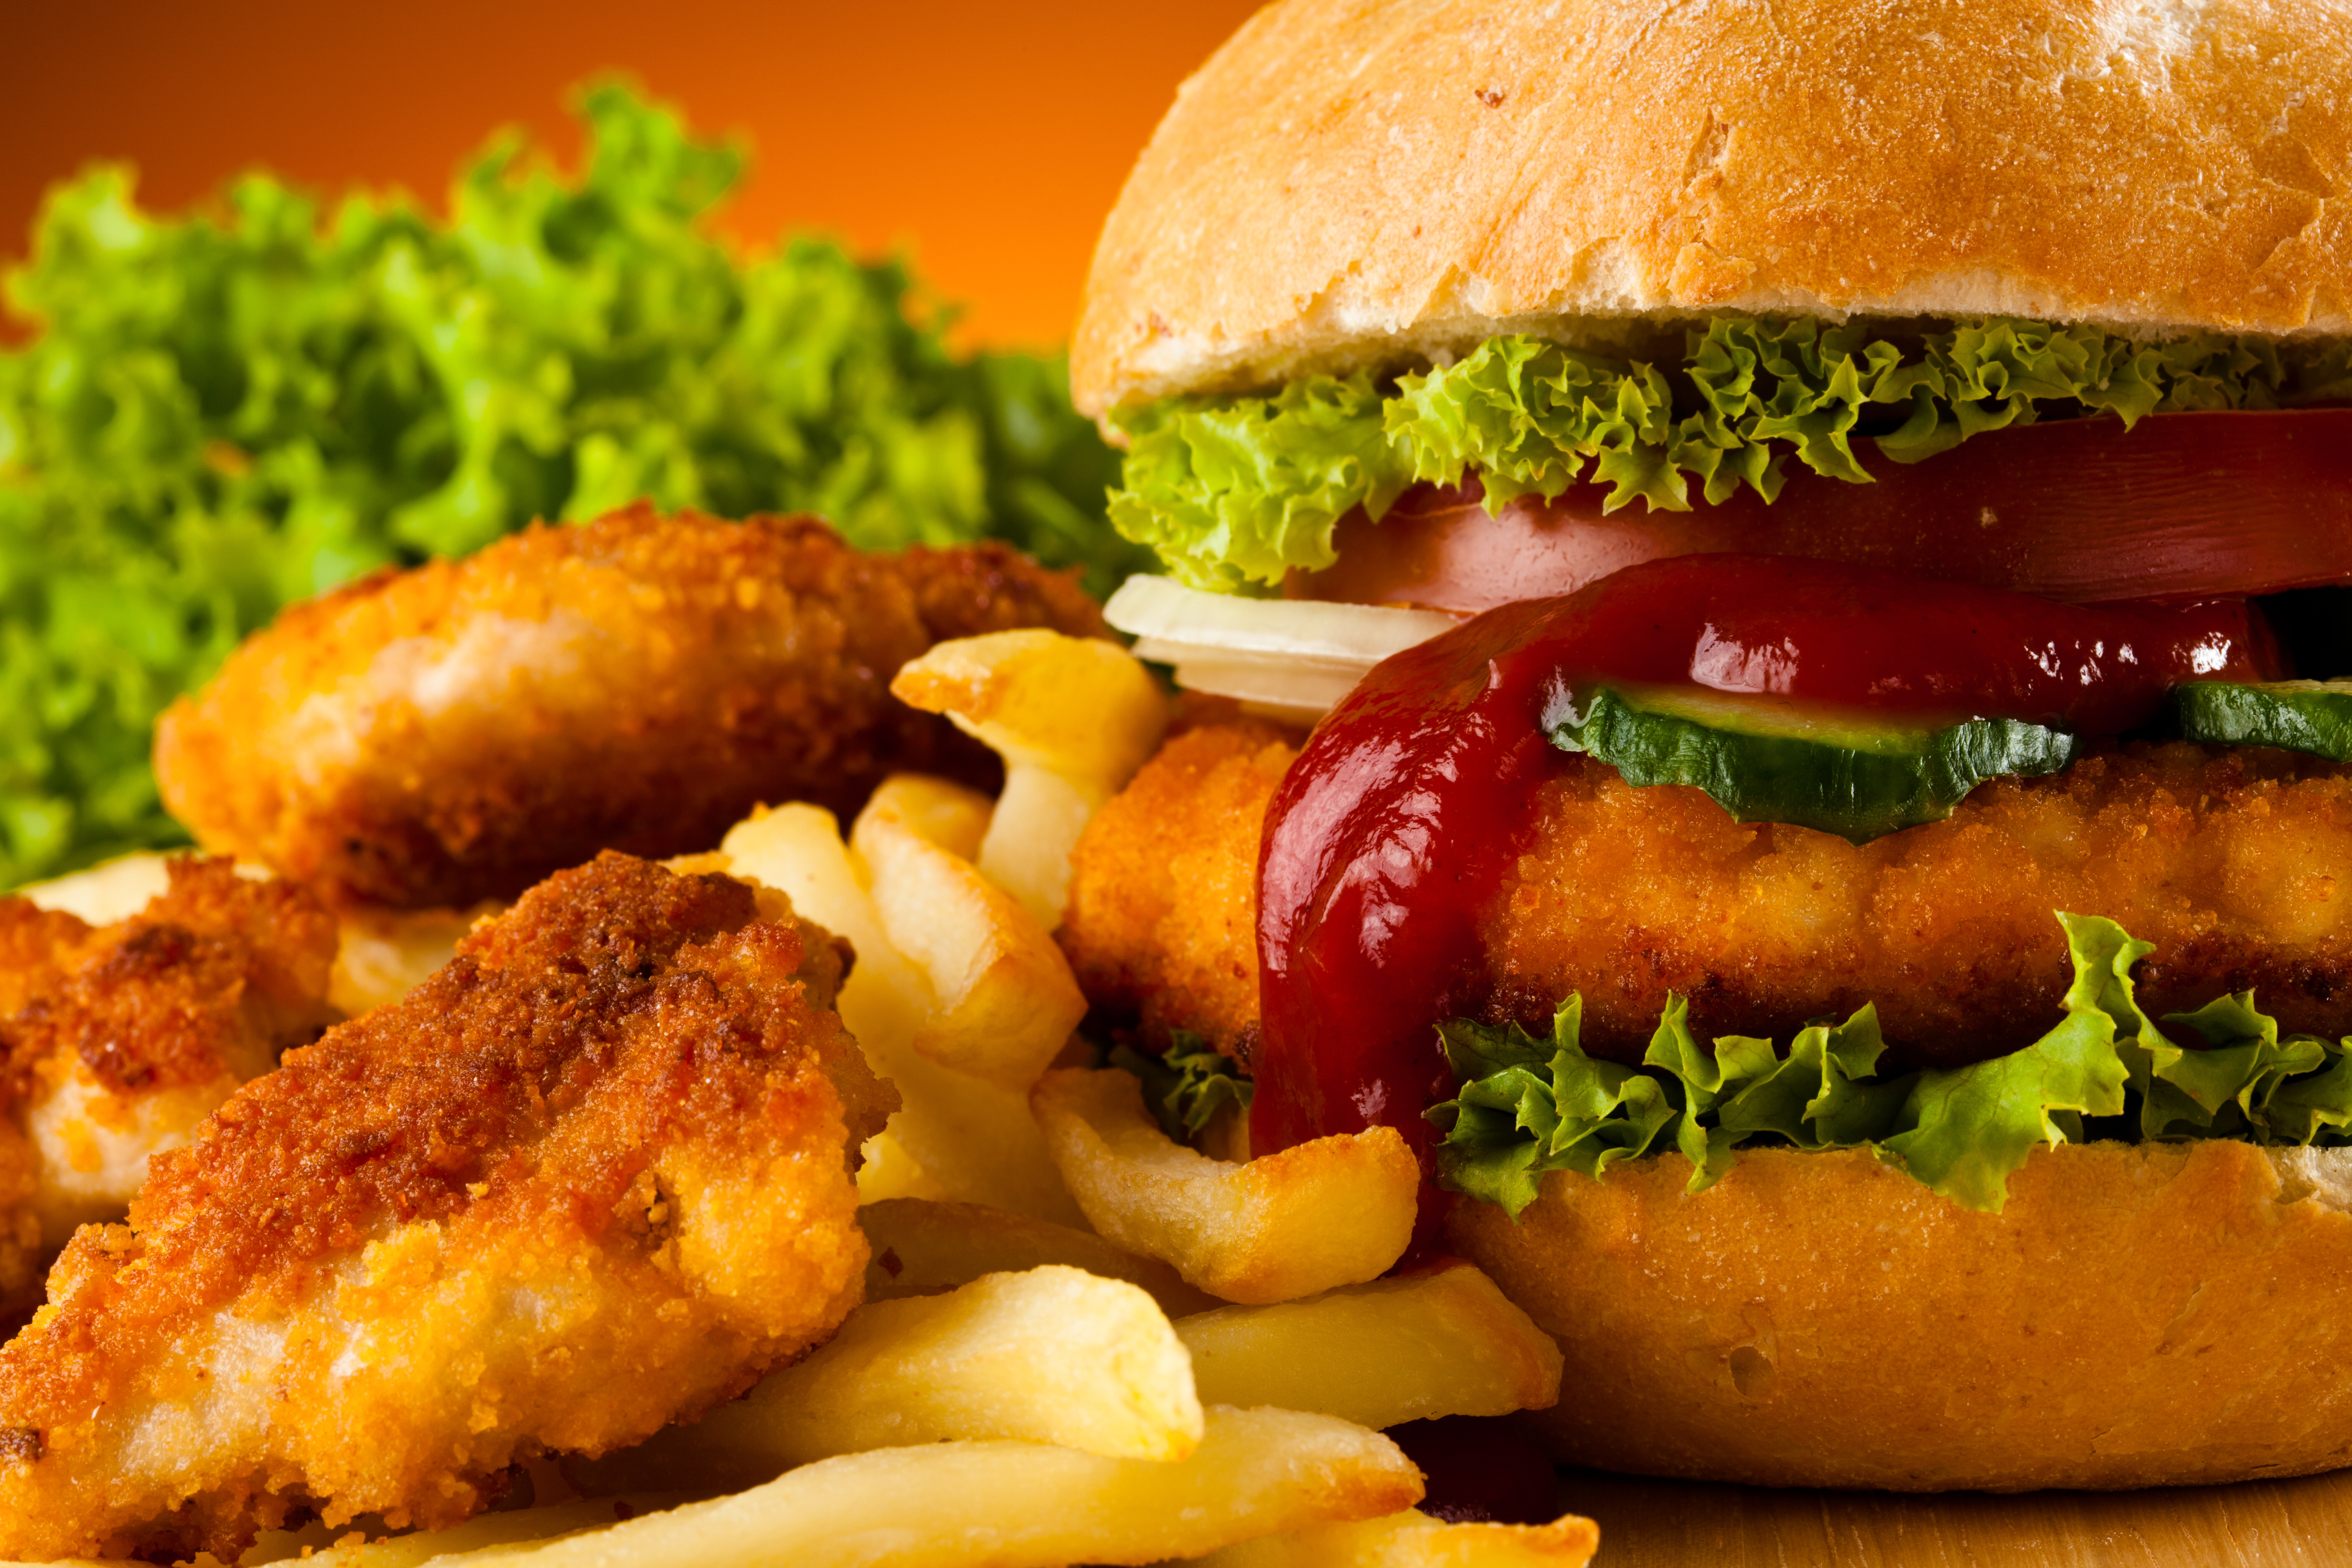 Fast food hamburger french fries chicken nuggets wallpaper 5616x3744